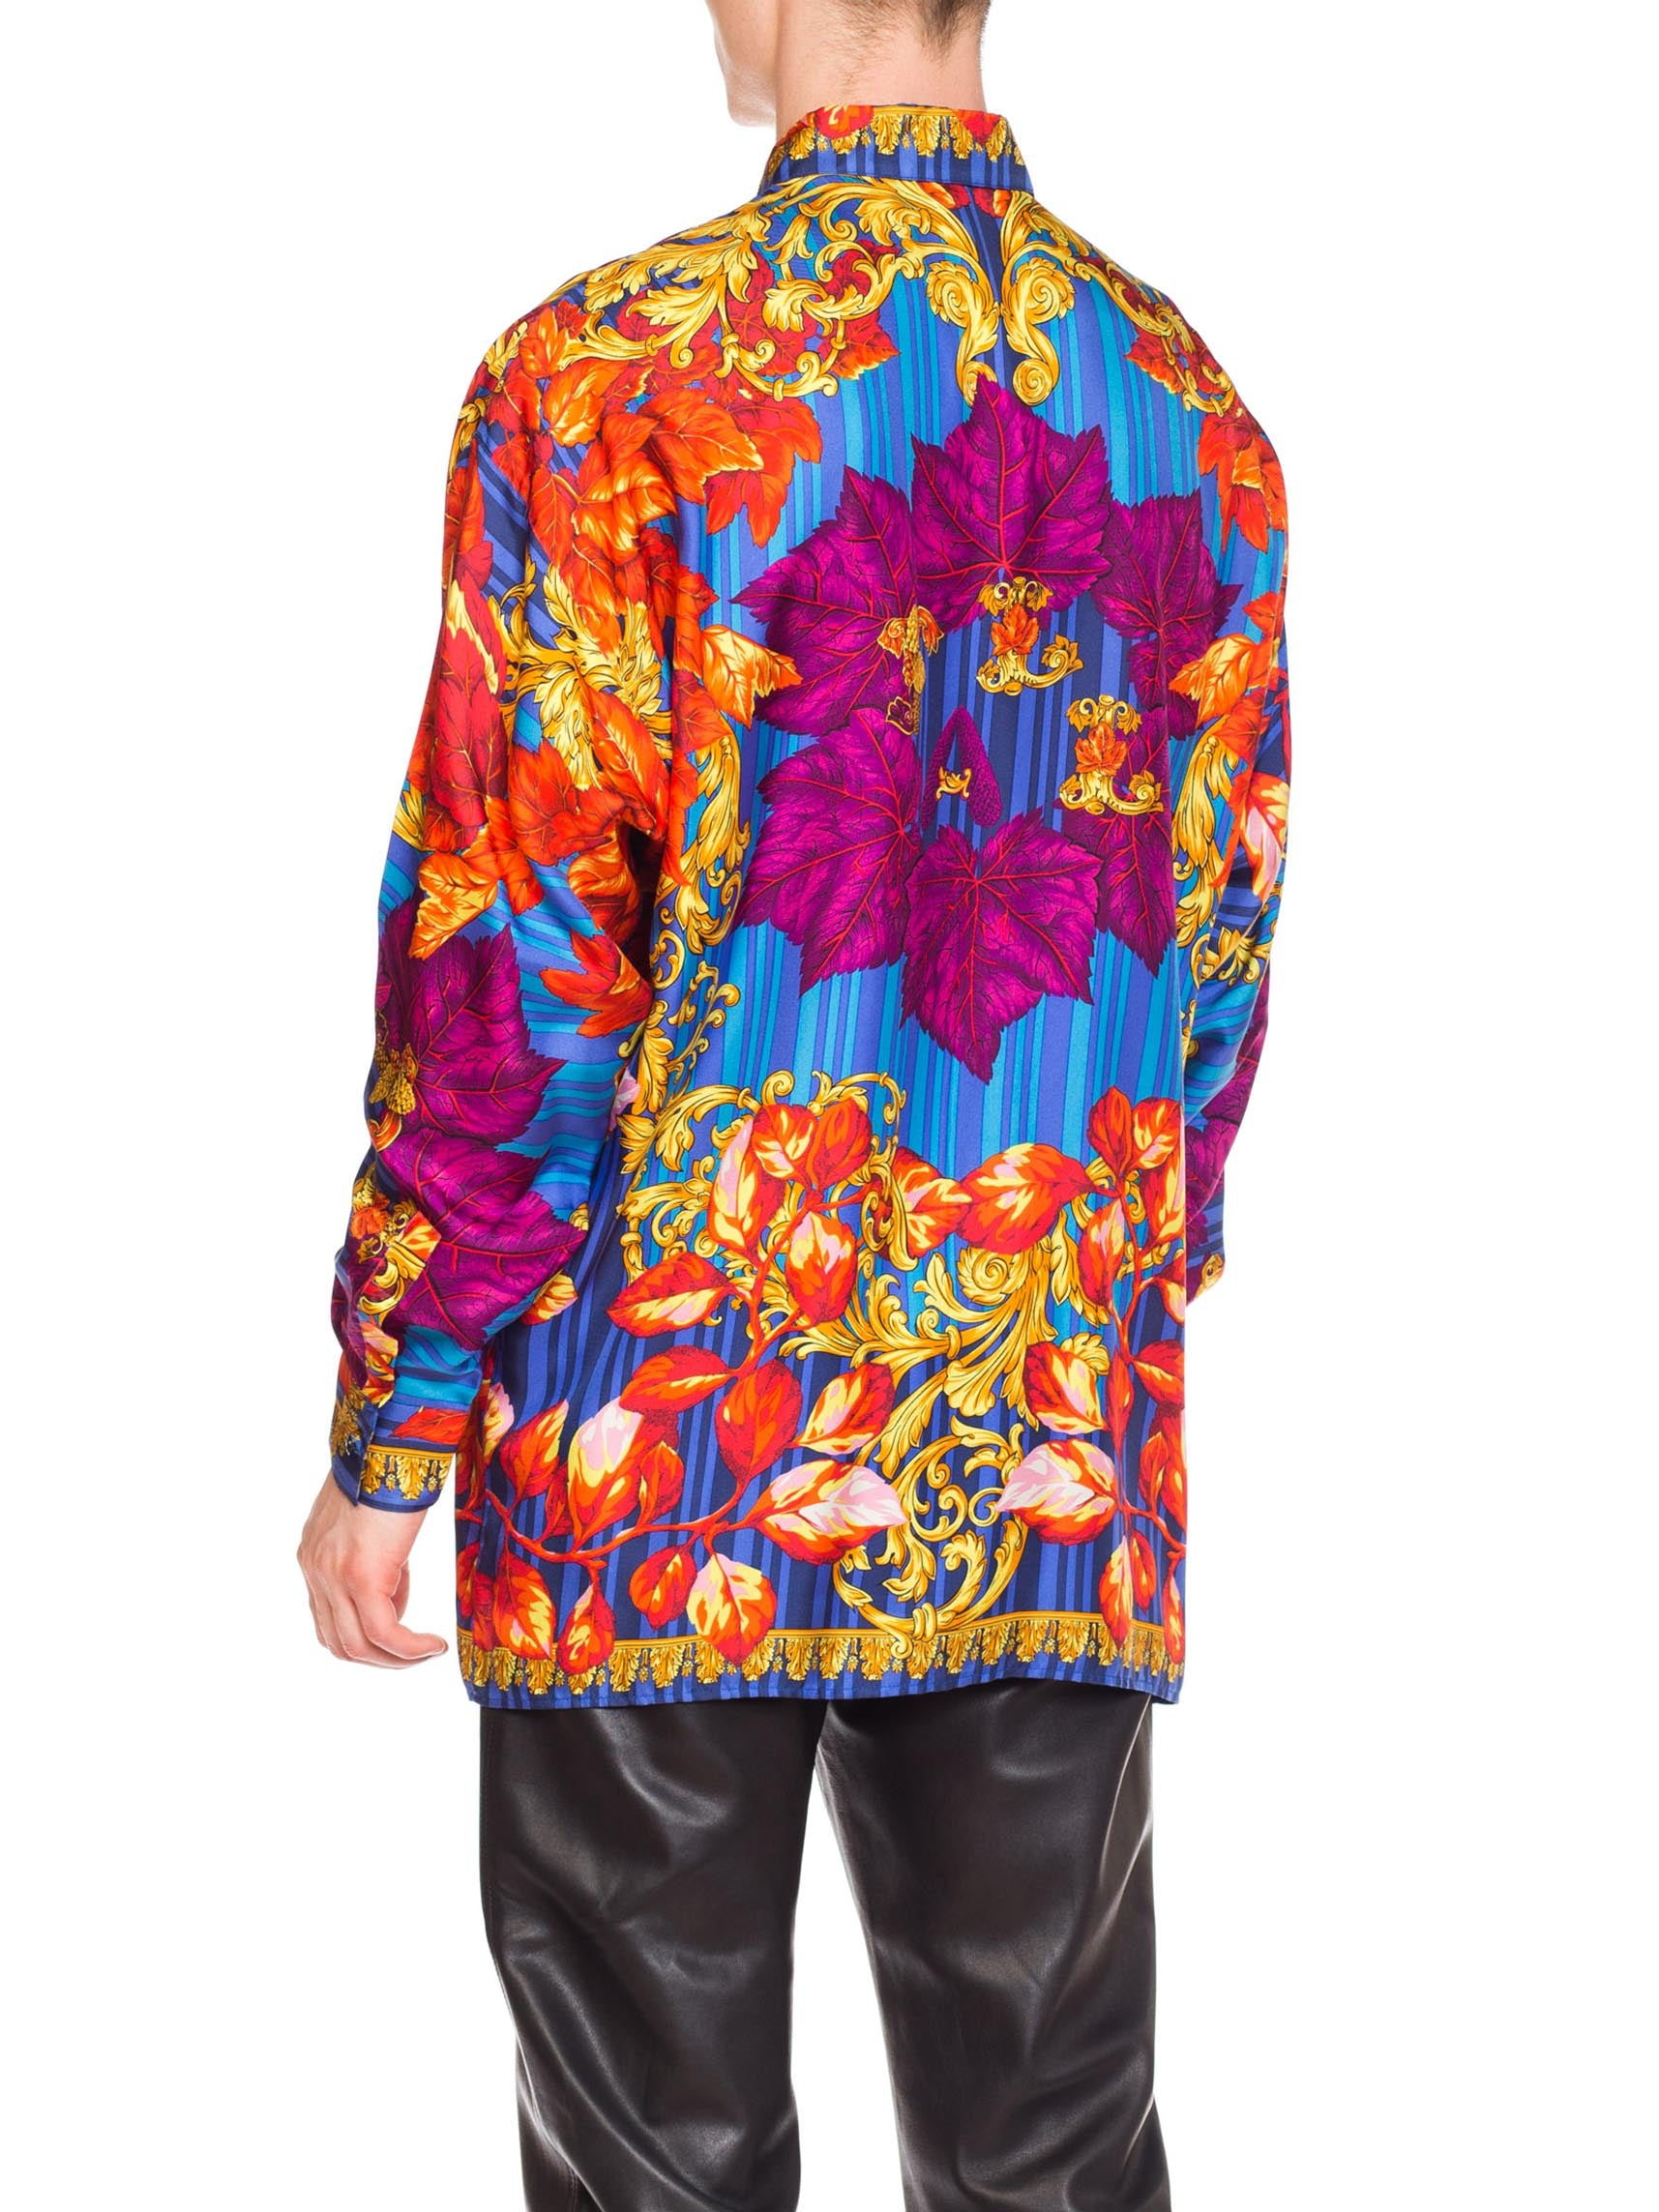 1990S GIANNI VERSACE Silk Men's Istante Gold Baroque Shirt